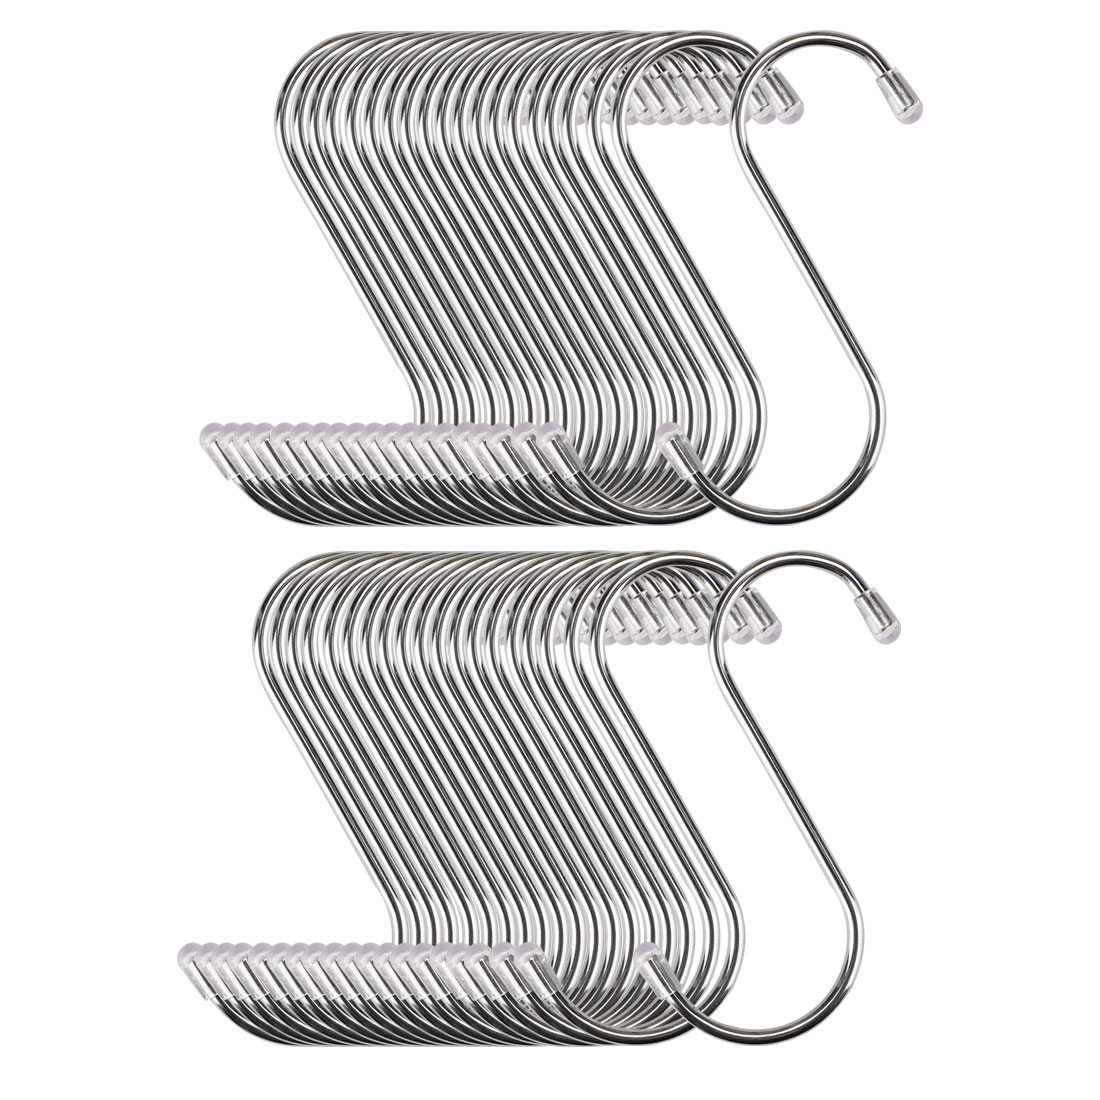 S Shape Hook Rack Stainless Steel for Kitchenware Clothes Utensil Holder 40 Pack